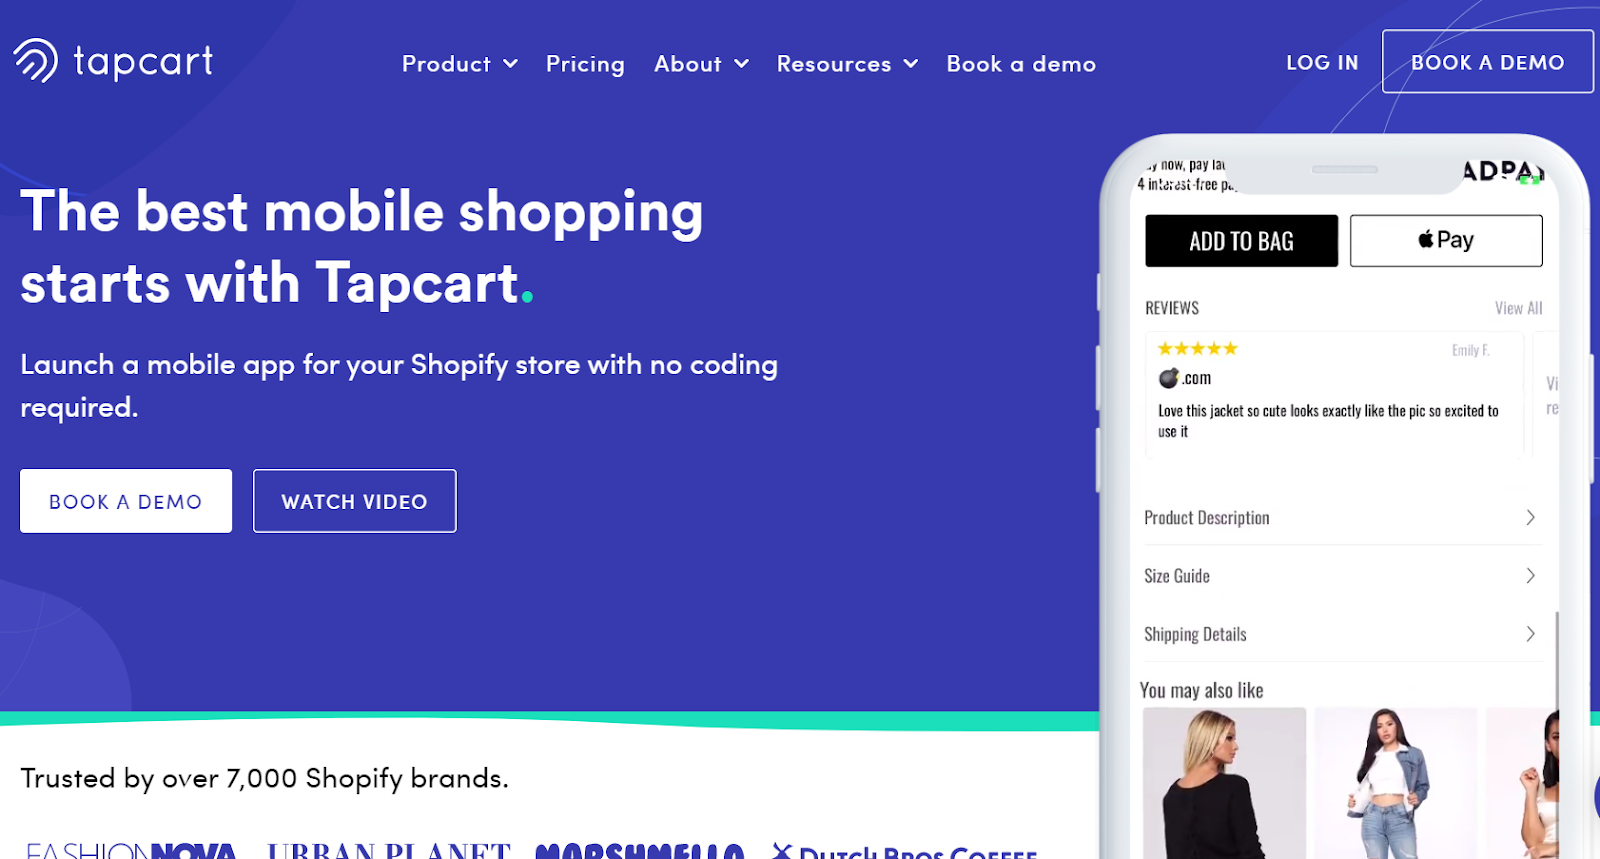 ecommerce marketing tools to build a mobile app